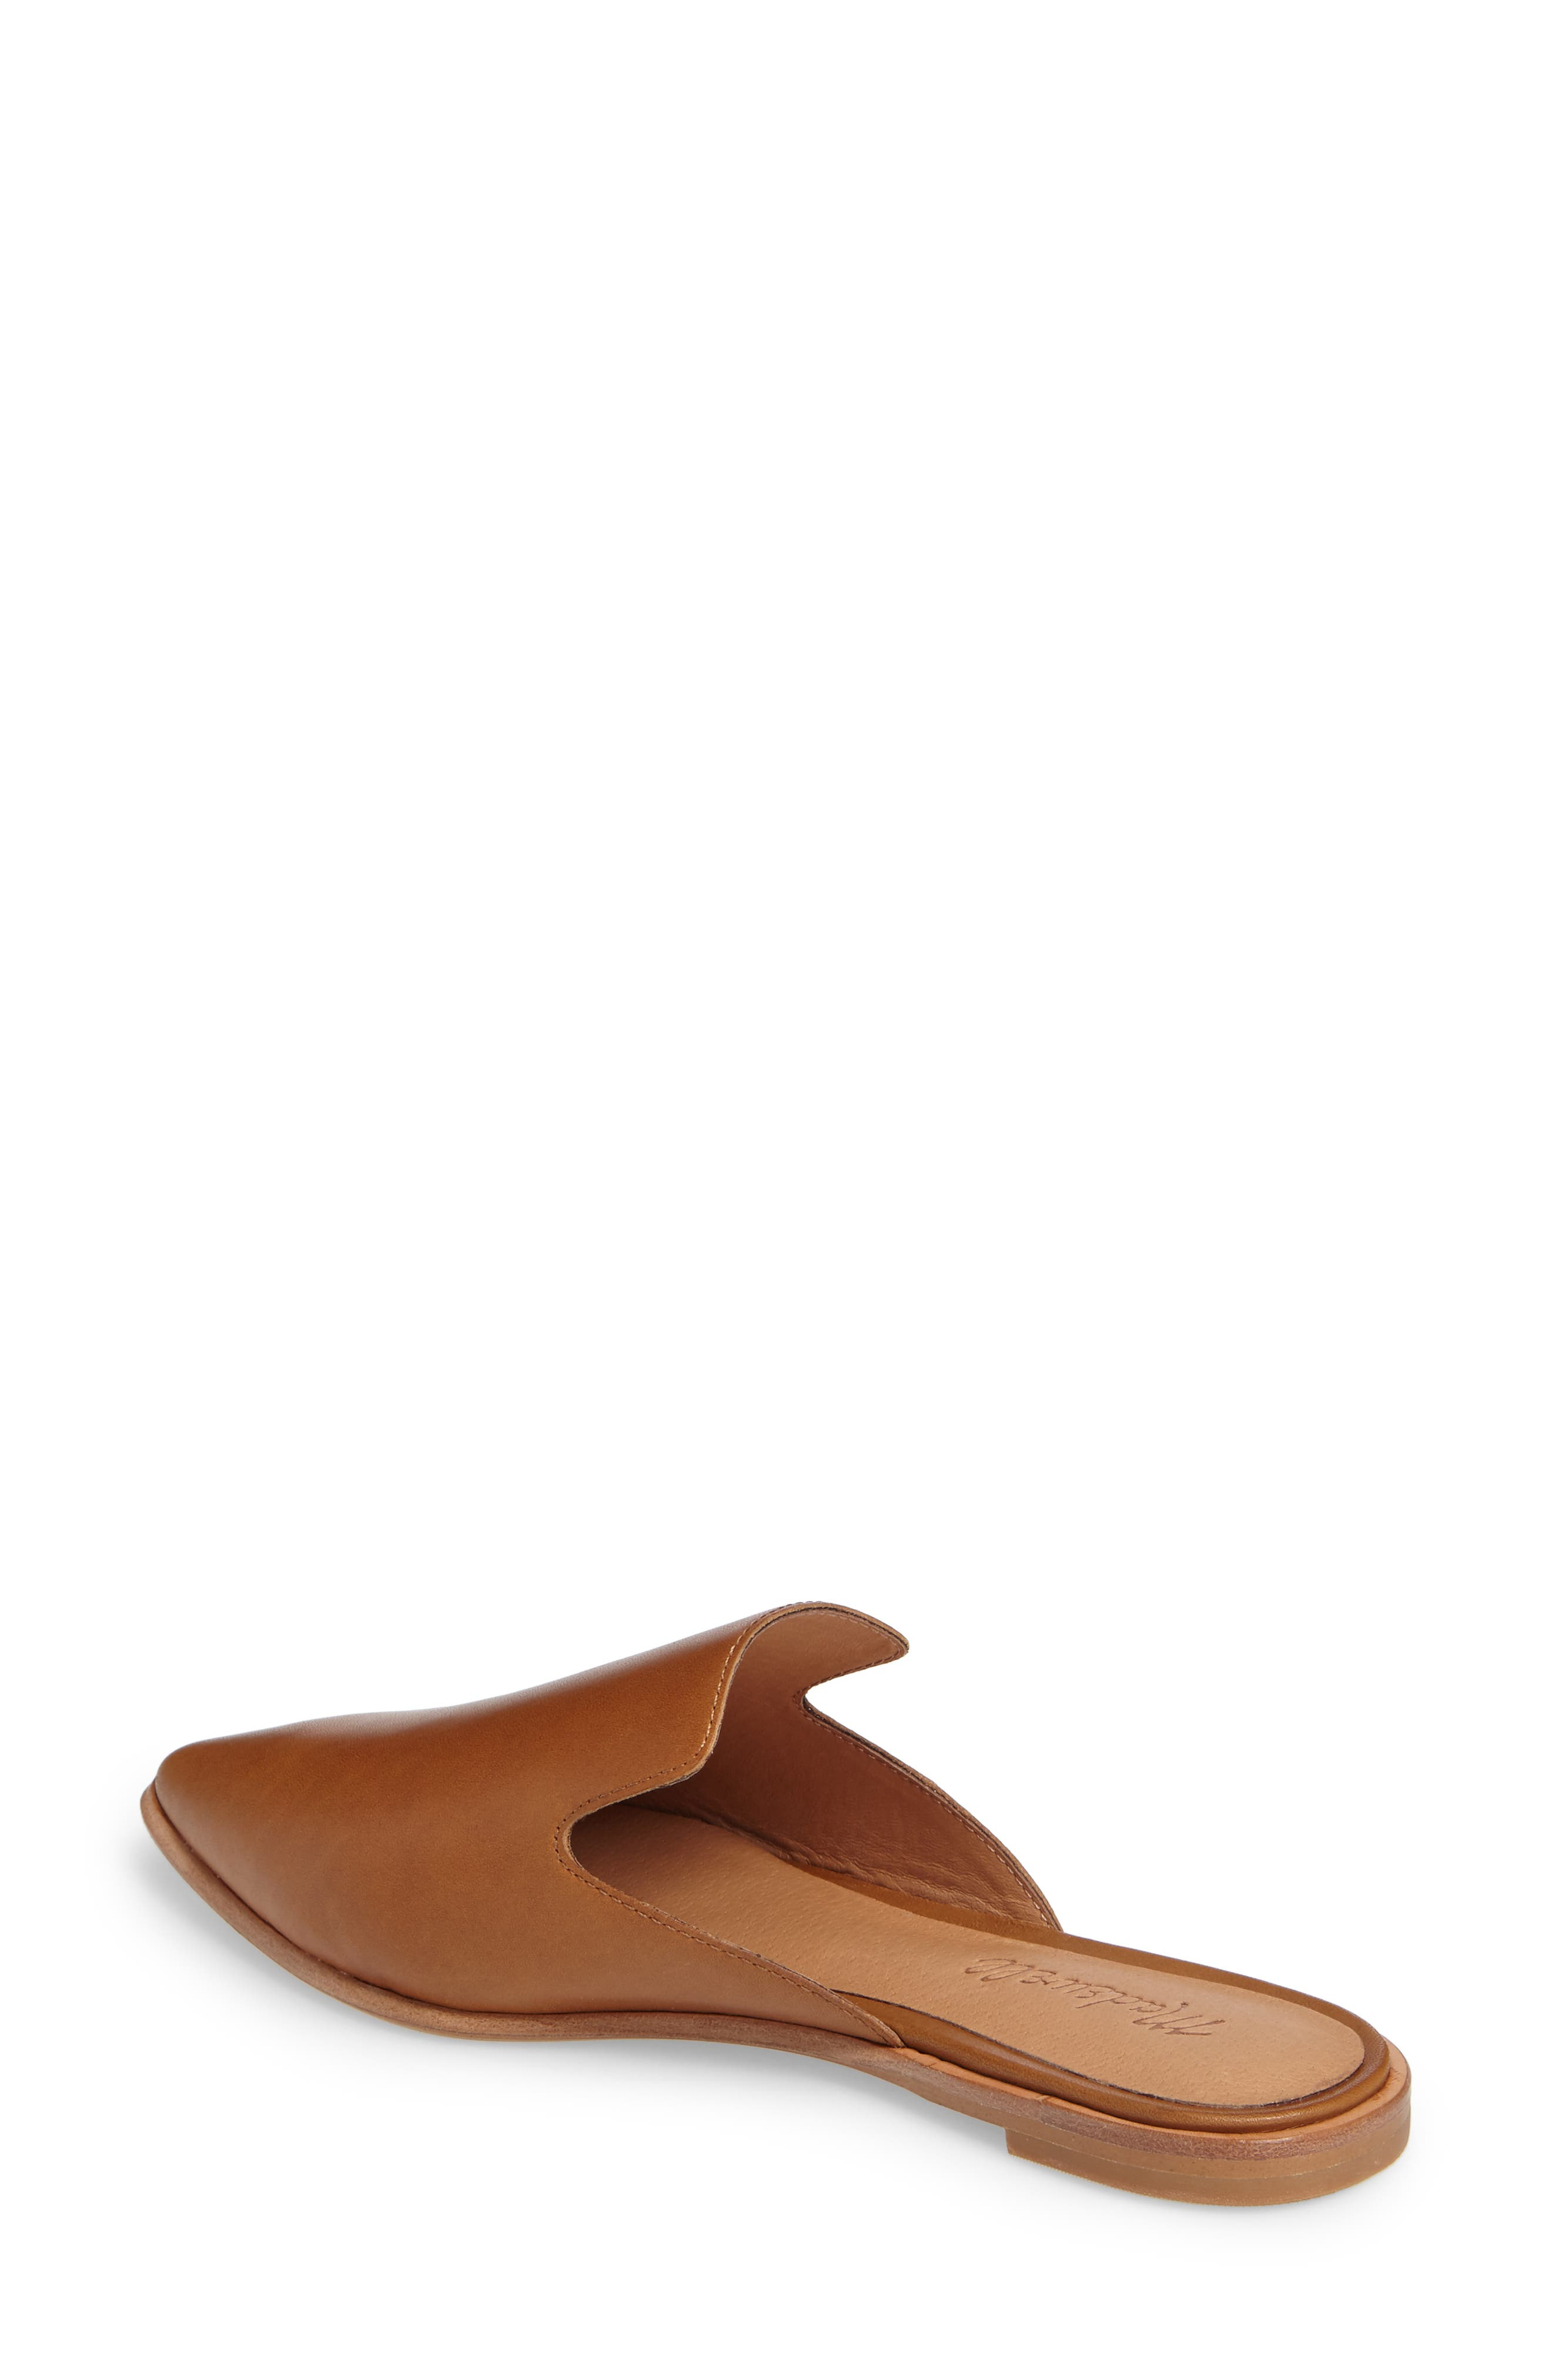 4856adaf6ee Women s Madewell Shoes